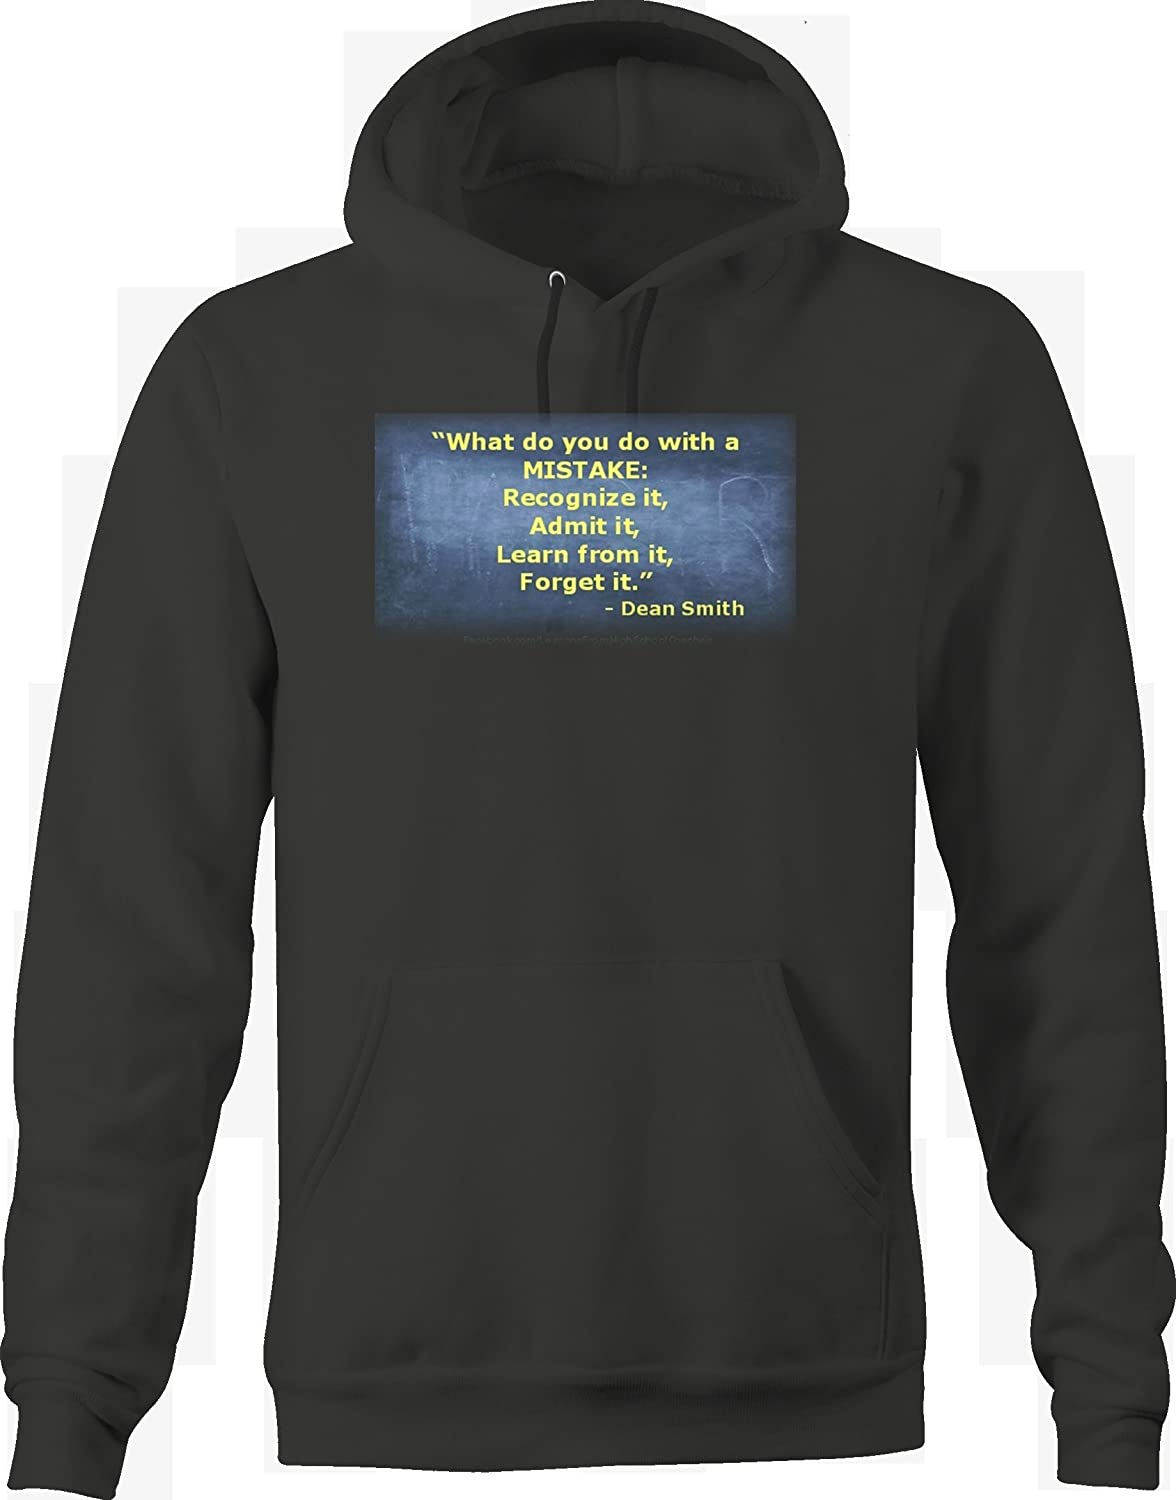 Forget it Hoodie for Men Dean Smith Quote Mistake Recognize Admit Learn